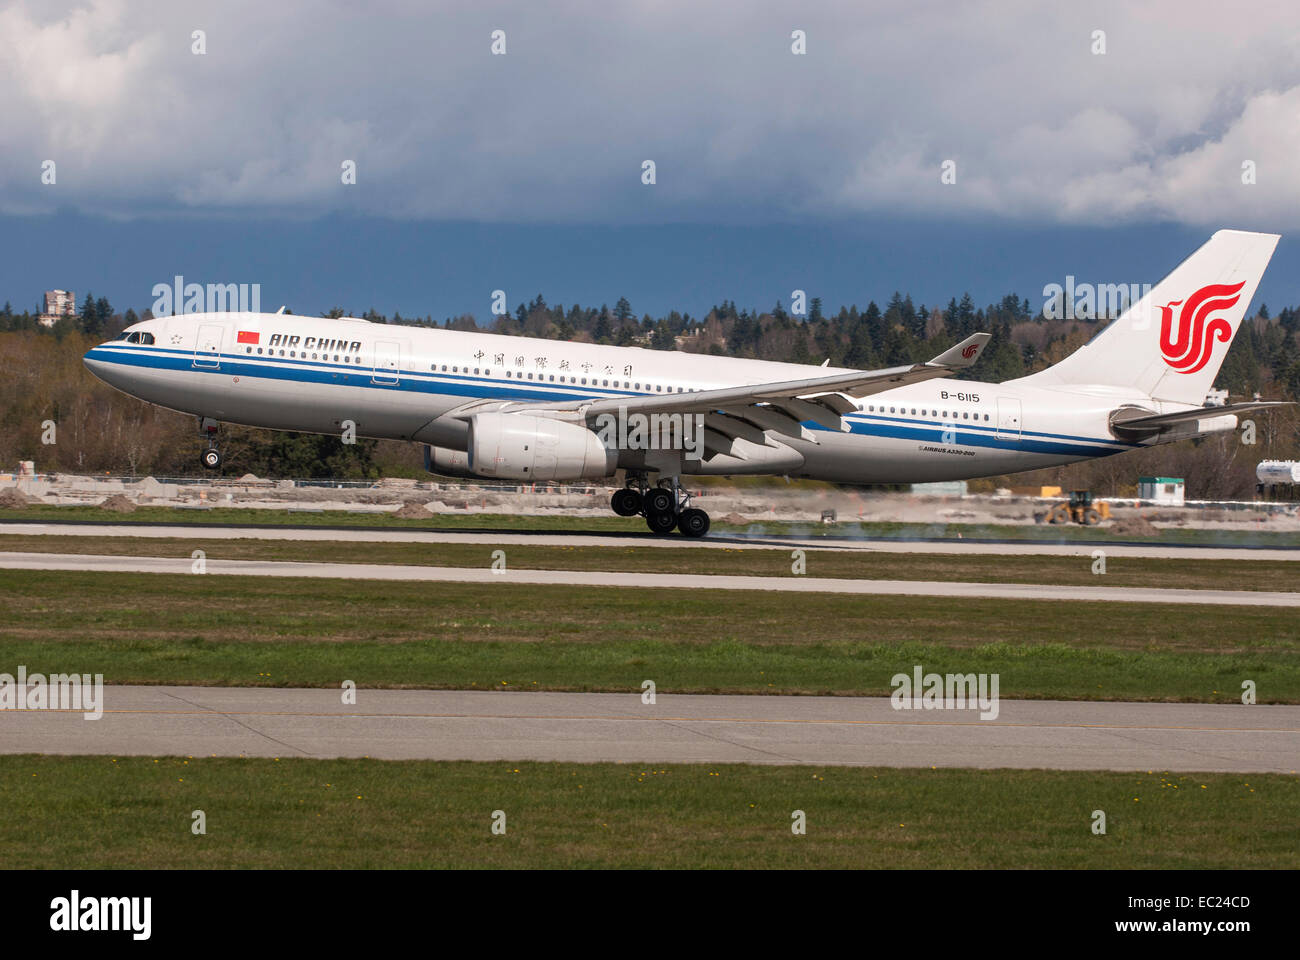 Air China commercial airliner Airbus A330-243 landing at YVR Vancouver International Airport. - Stock Image